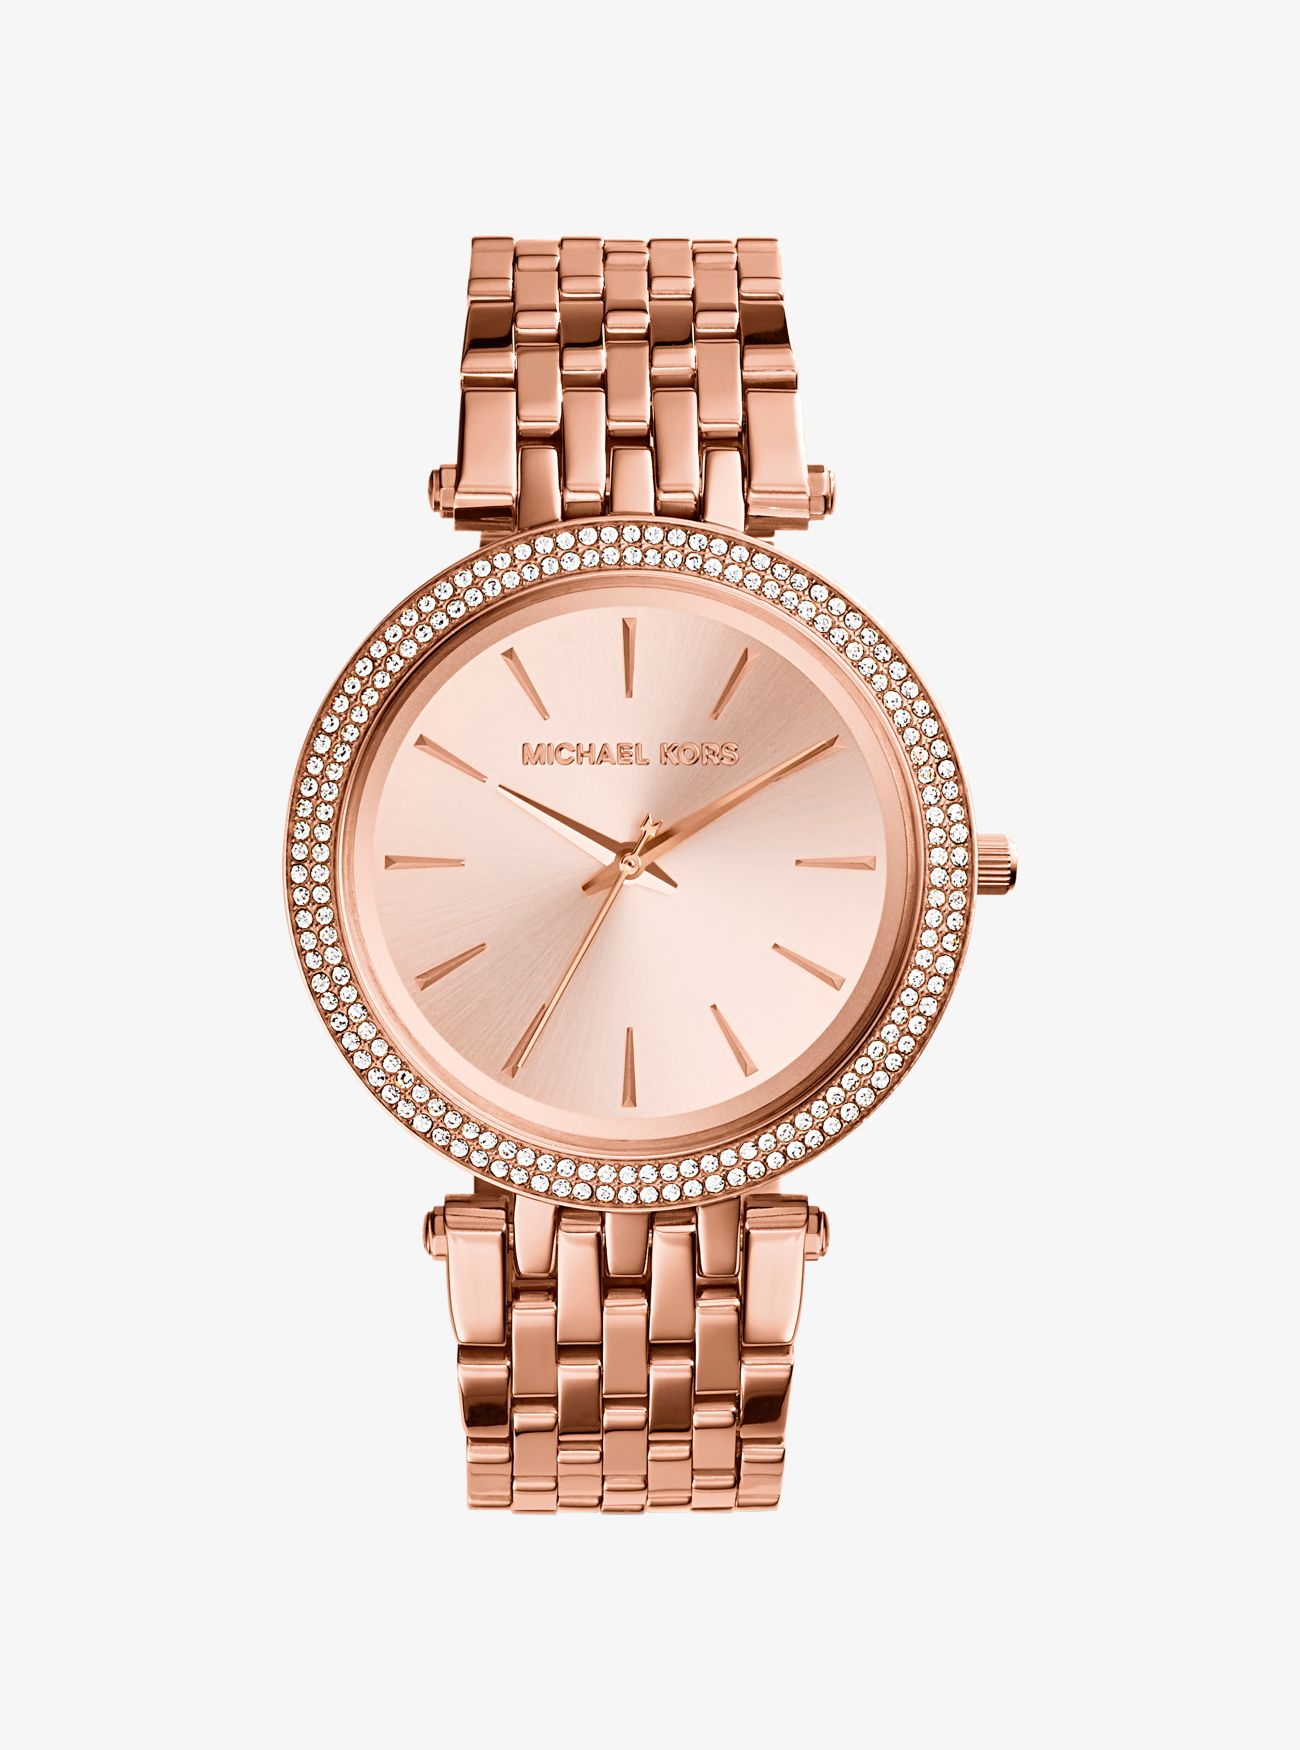 r gold jaryn tone rose is michael kors us watch watches